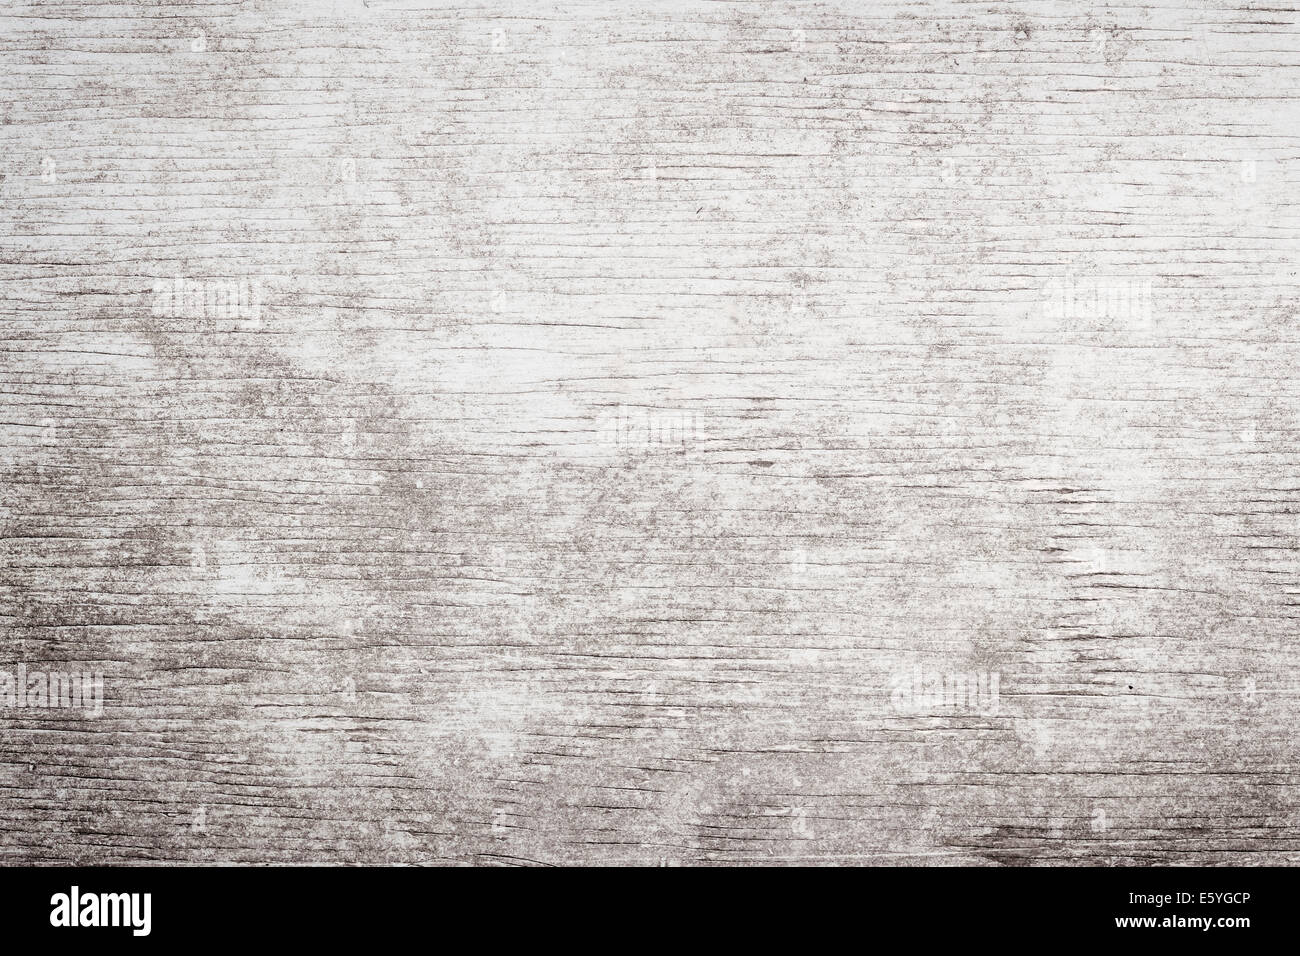 Gray Wooden Background Of Weathered Distressed Rustic Wood With Faded Stock Photo Royalty Free